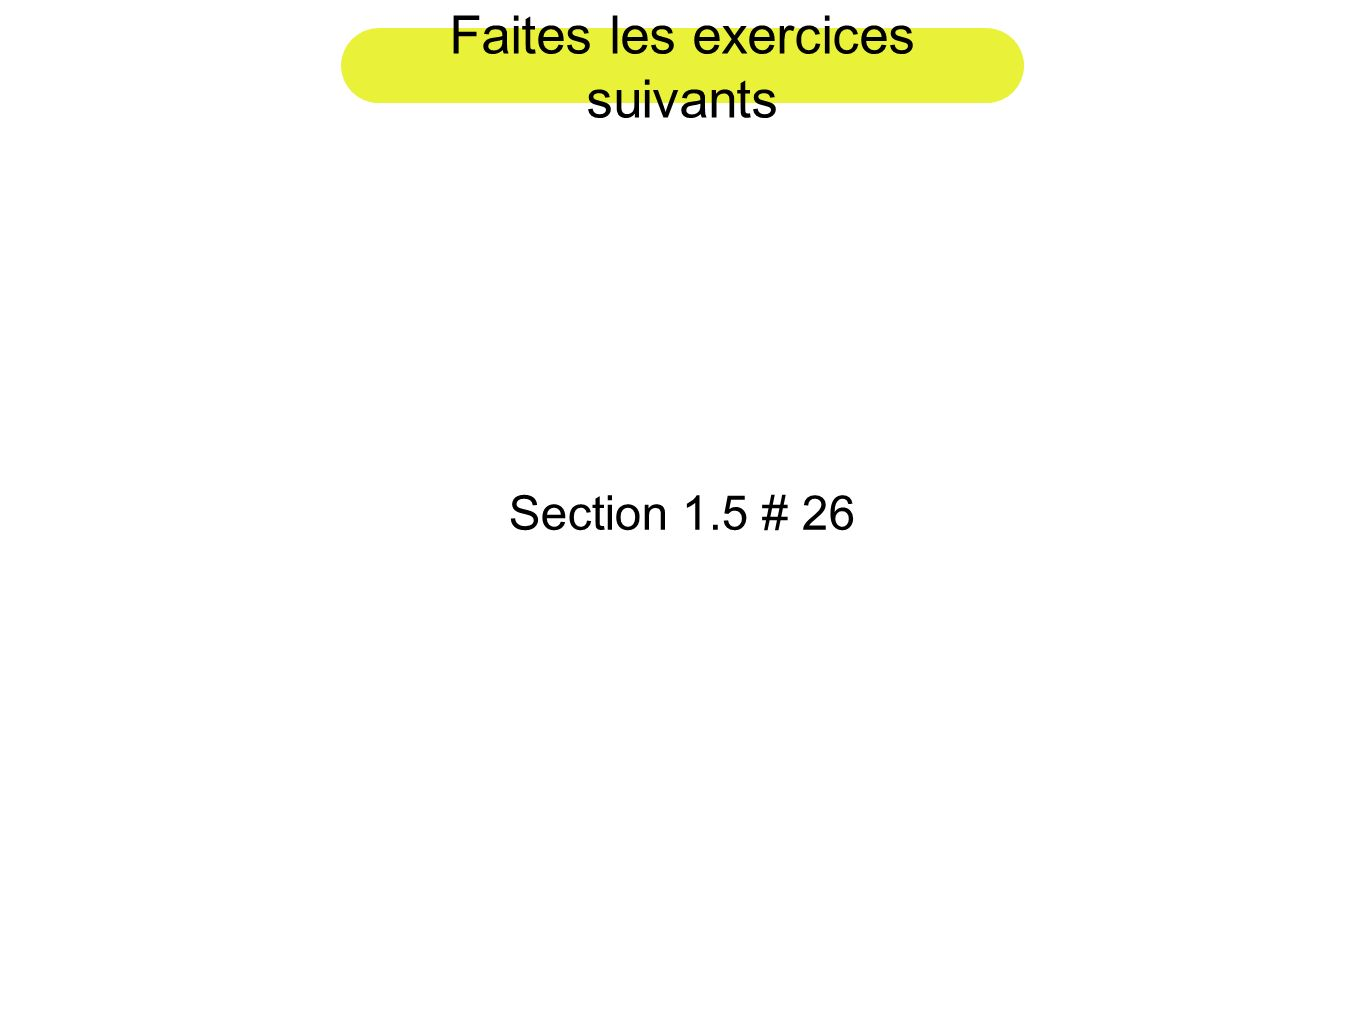 Faites les exercices suivants Section 1.5 # 26